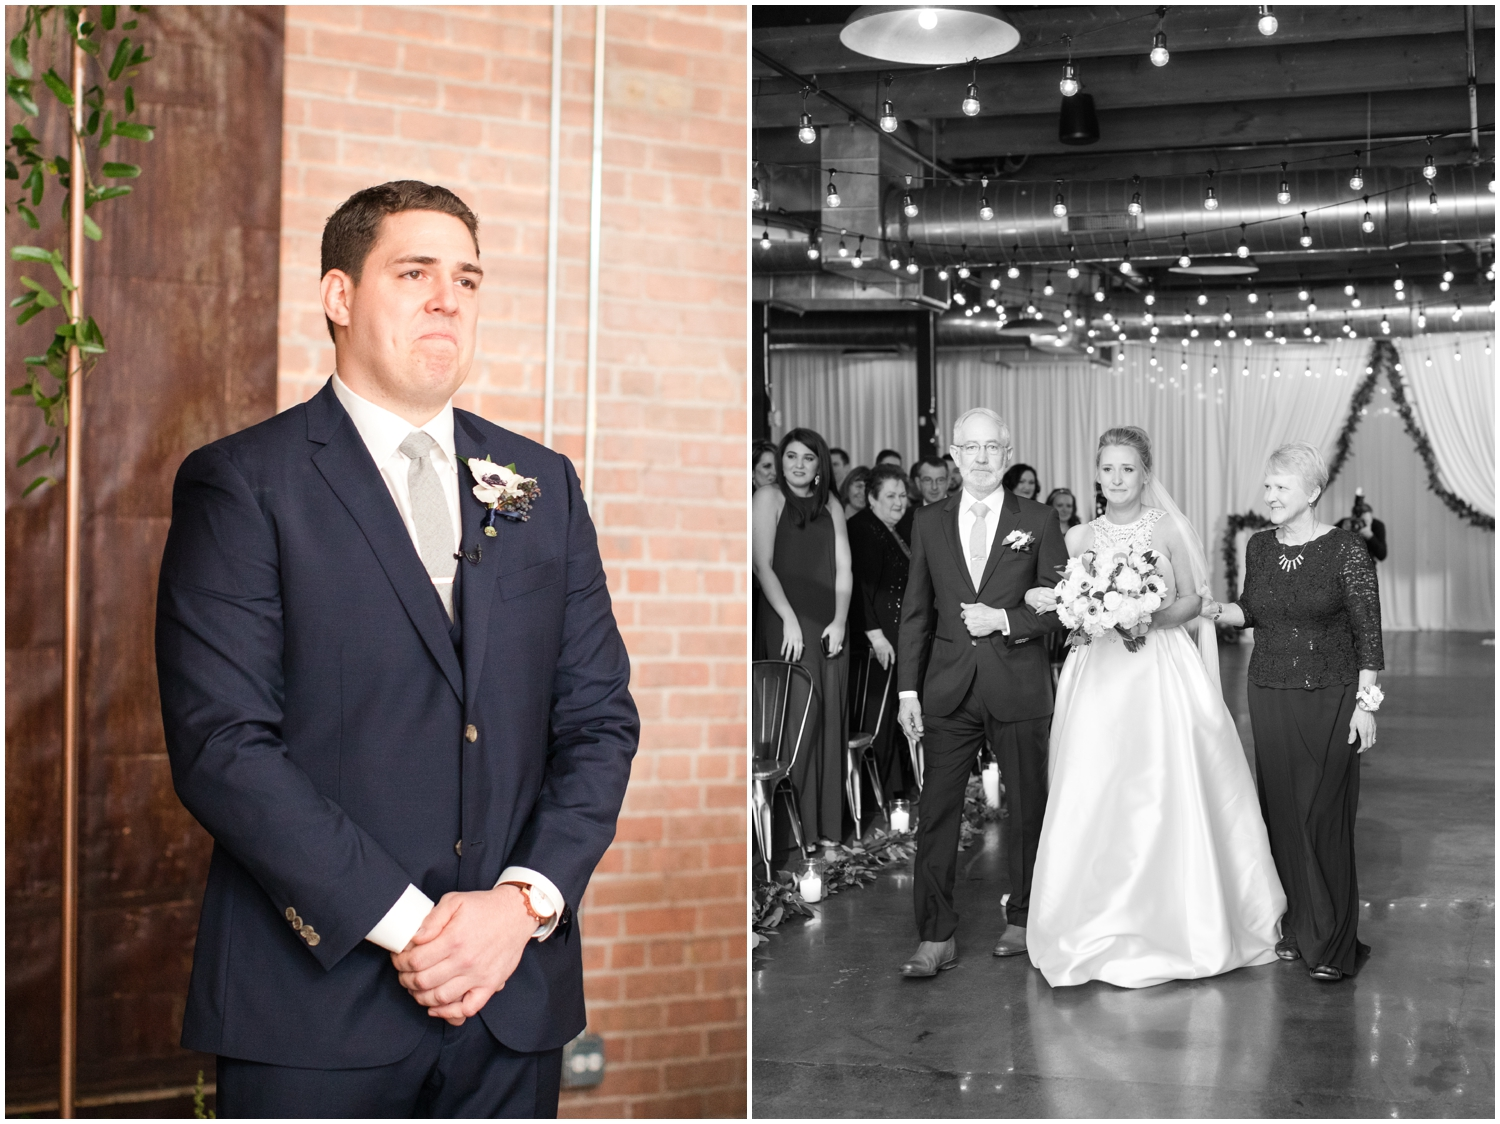 groom gazing at the bride while she walks down the aisle